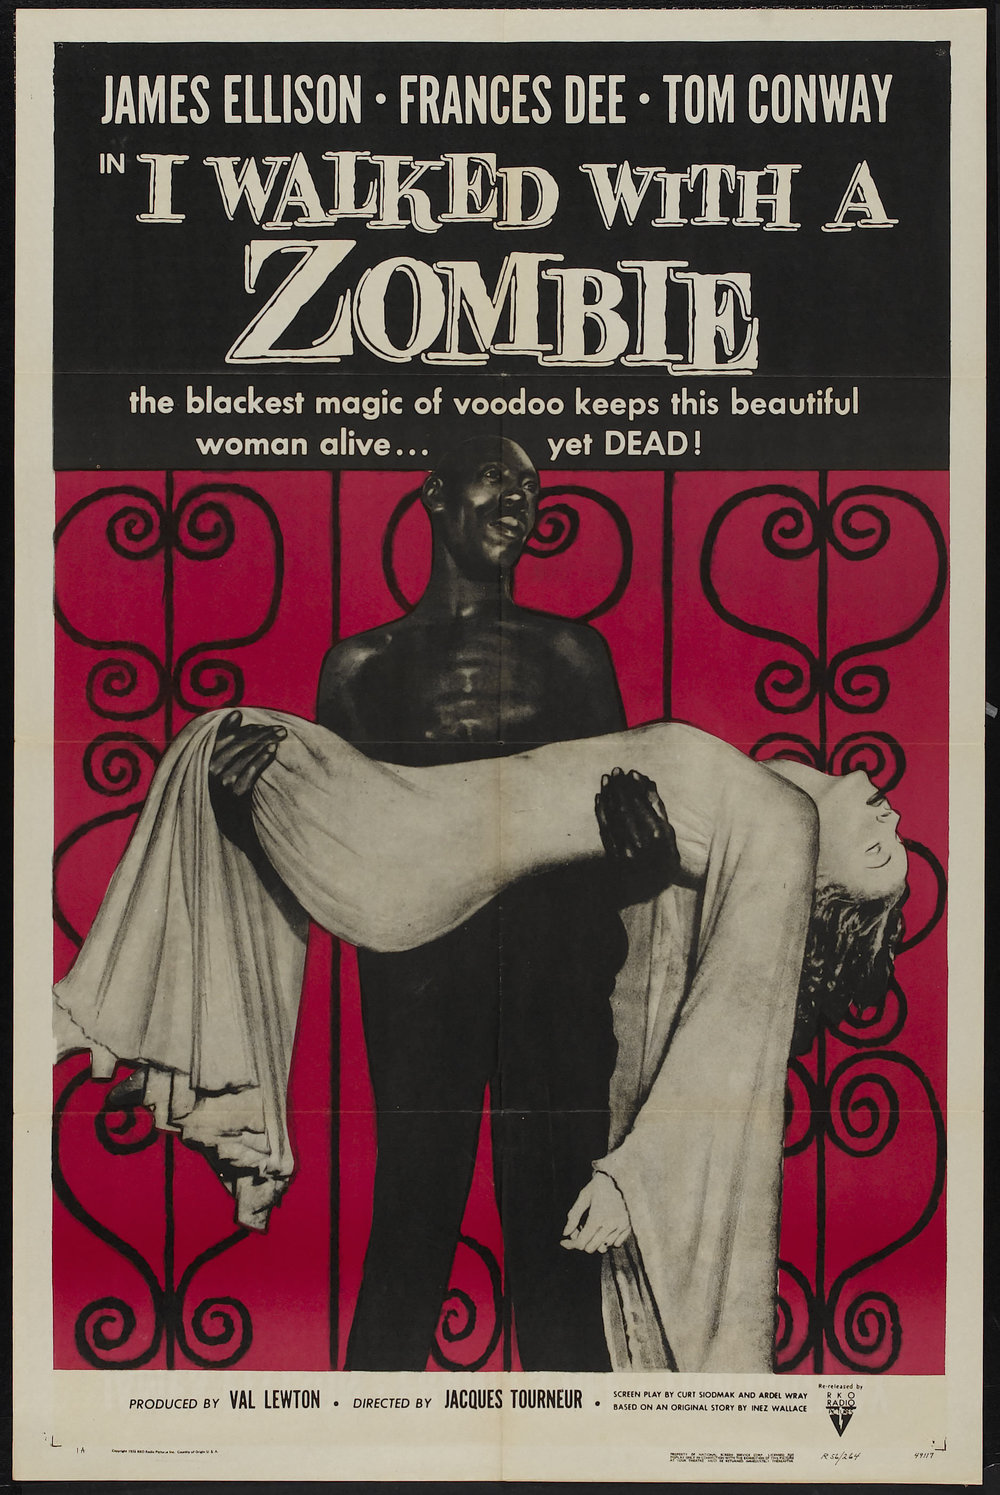 I_walked_with_zombie_poster_02.jpg